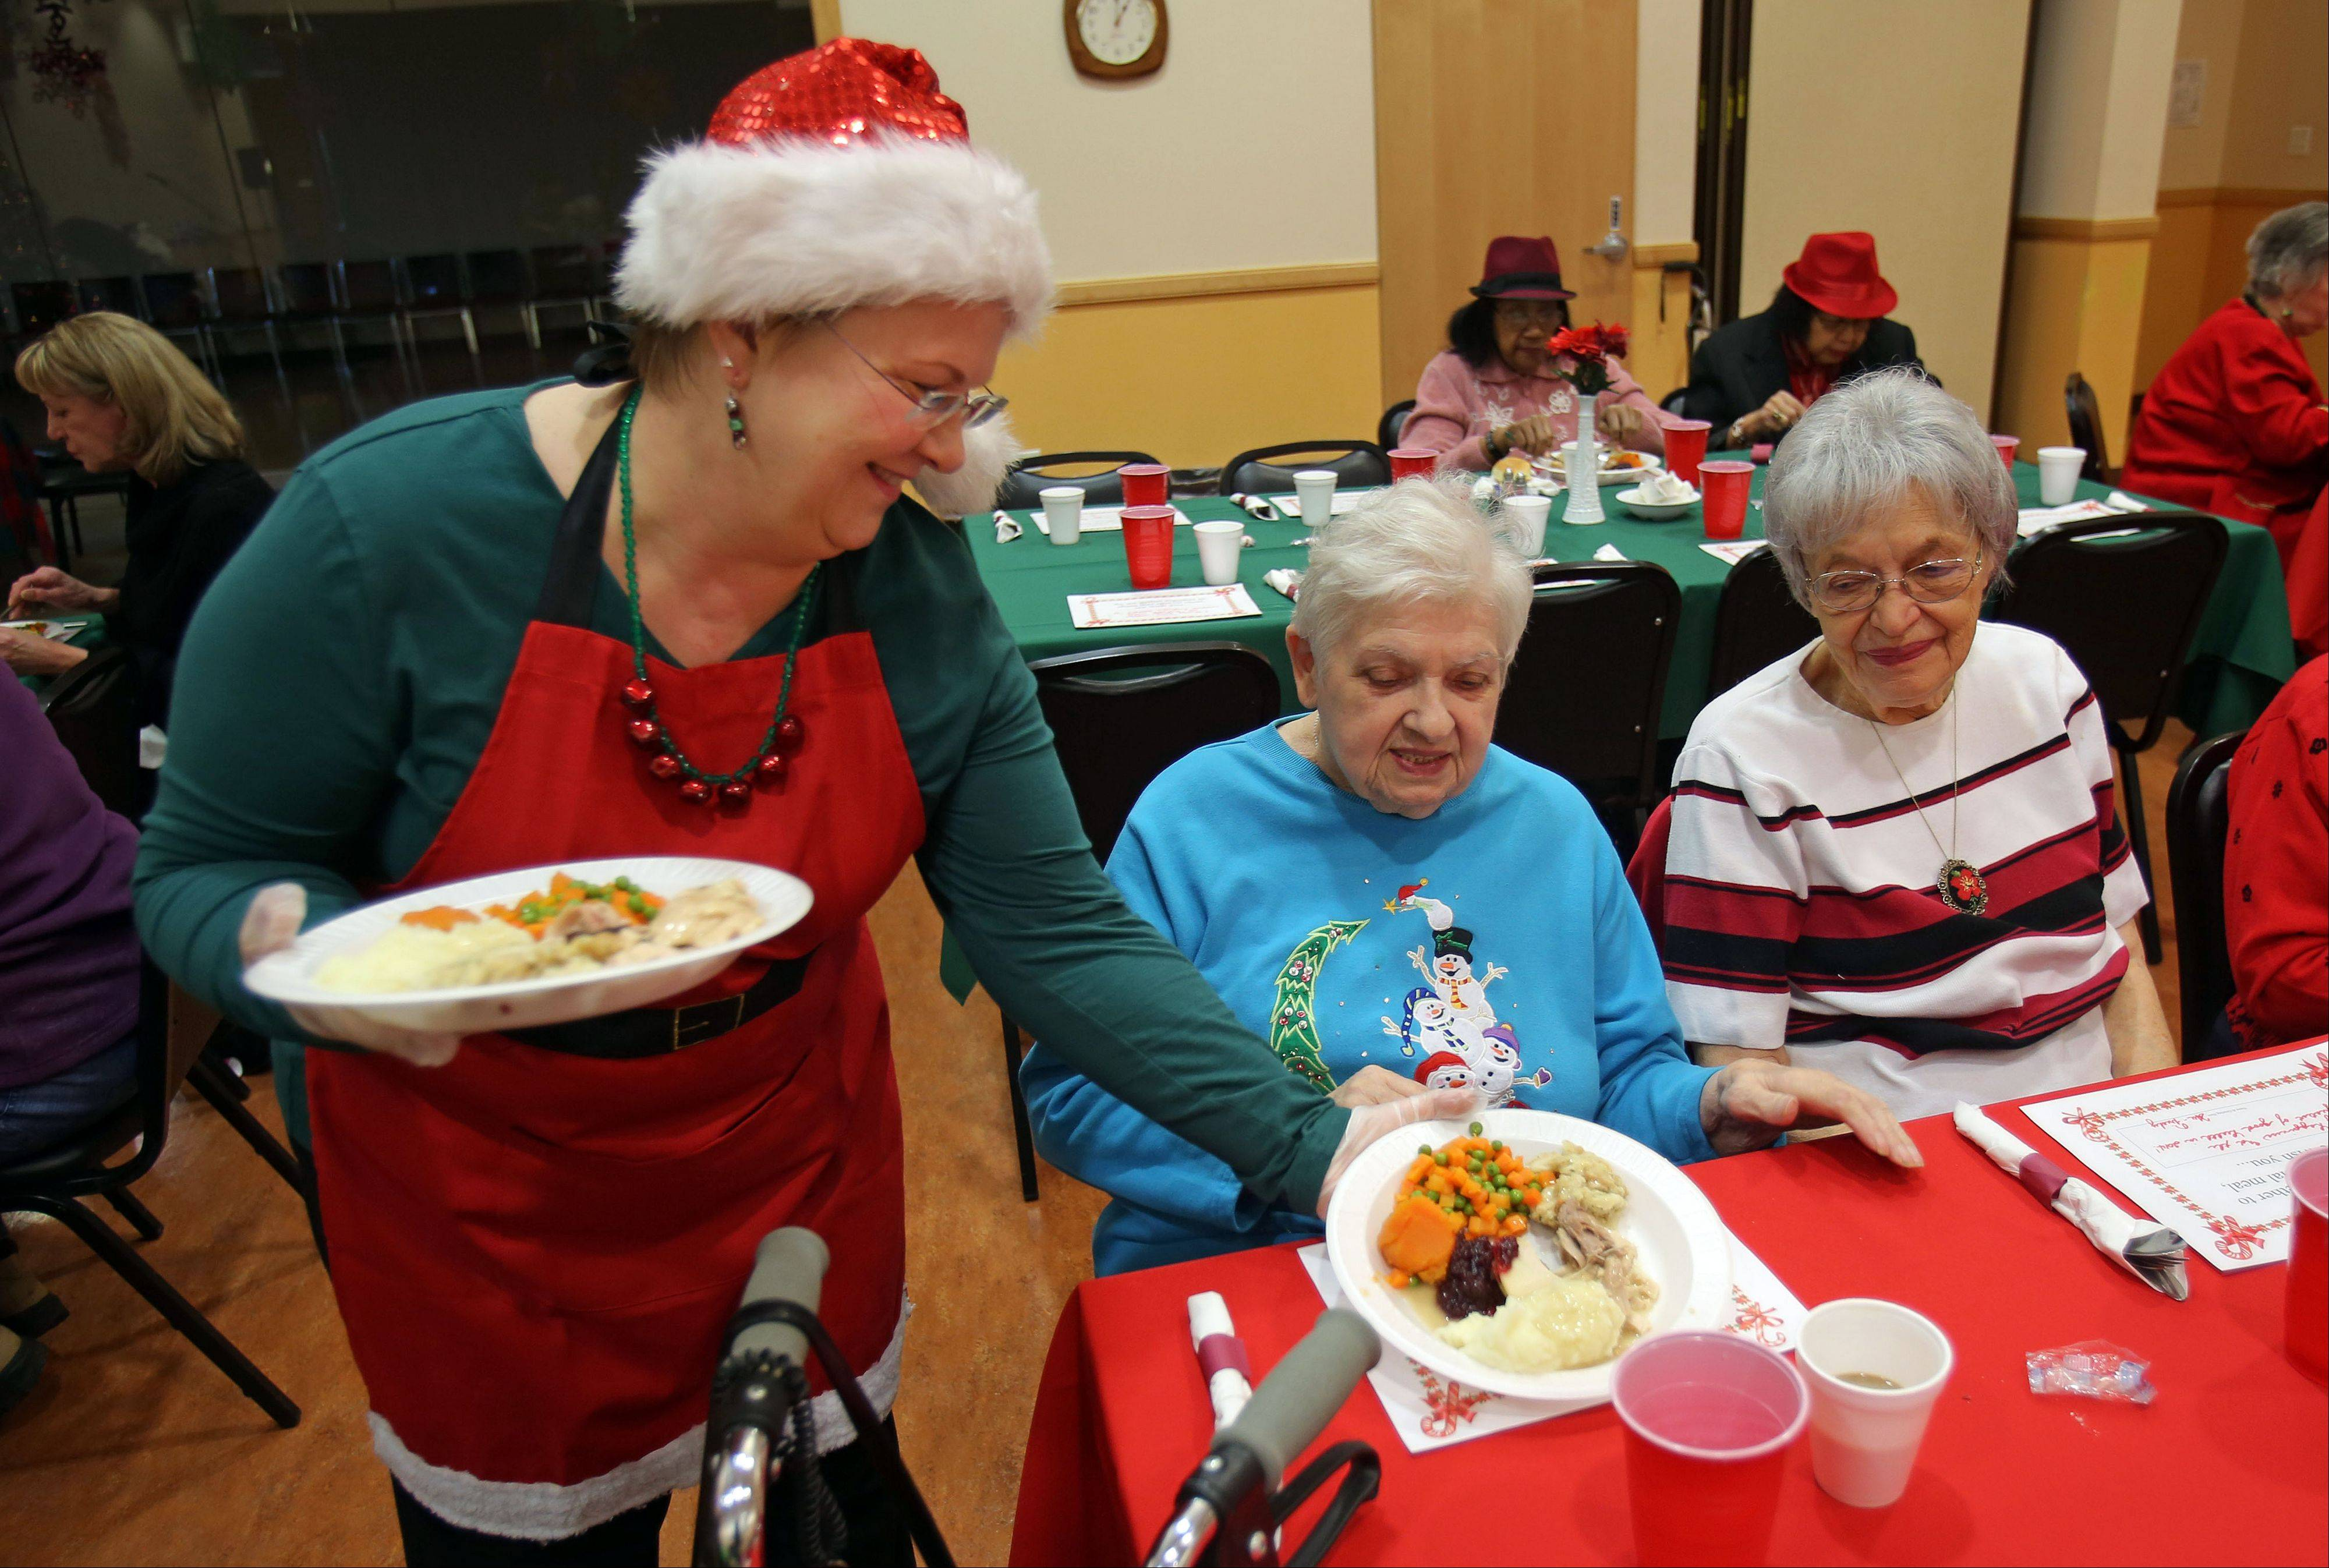 Des Plaines City Clerk Gloria Ludwig, left, serves Christmas dinner to Marta Androne of Schaumburg and Hilda Hoffmann of Des Plaines.